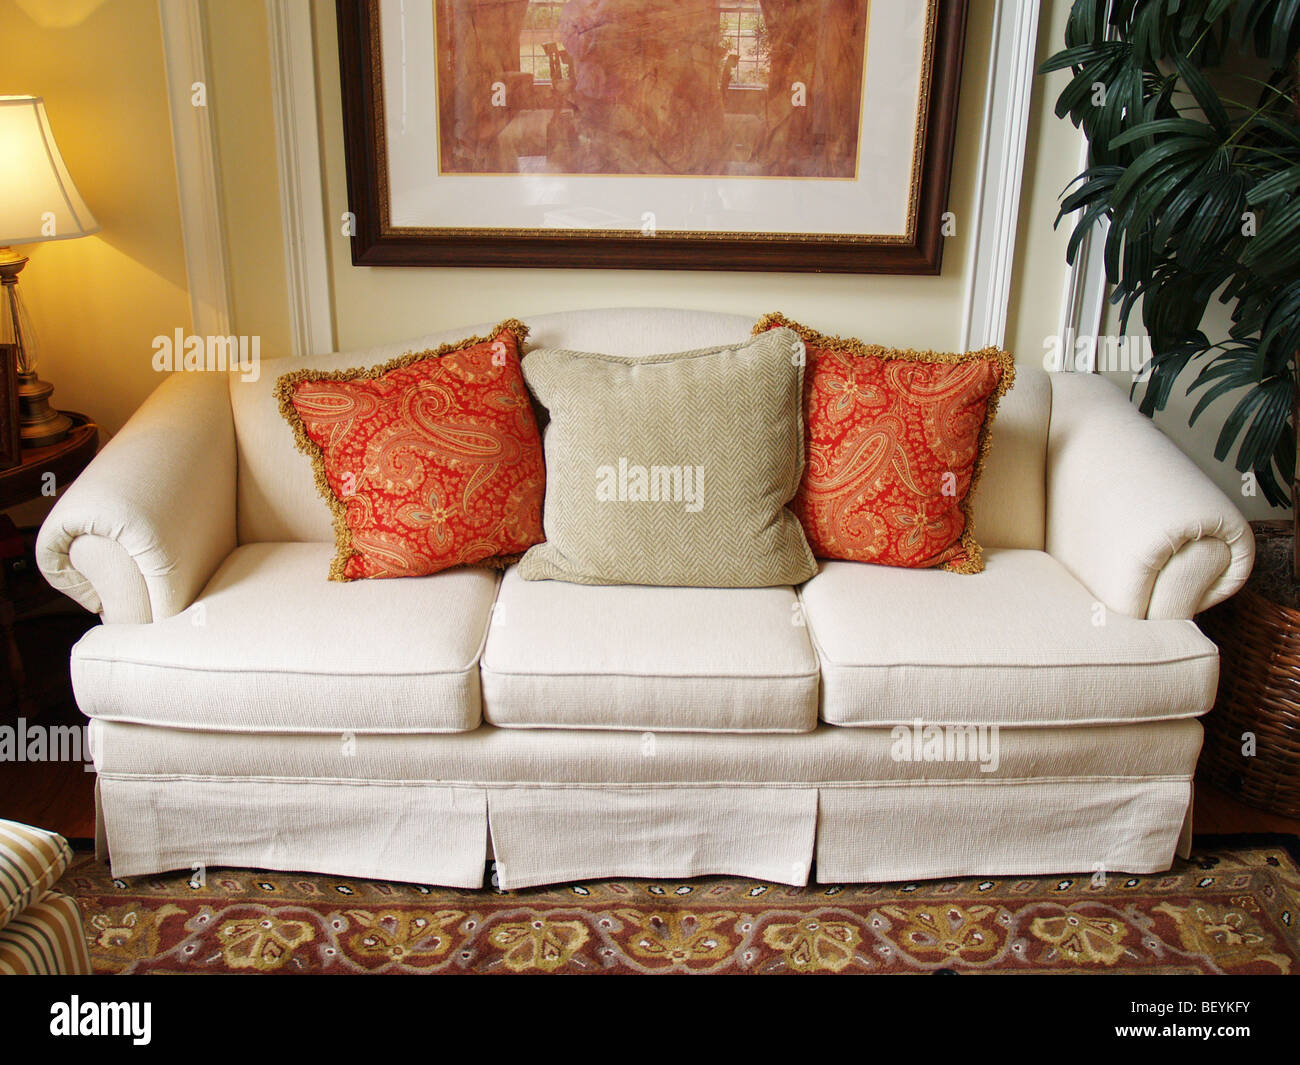 A comfortable sofa in a well decorated room - Stock Image